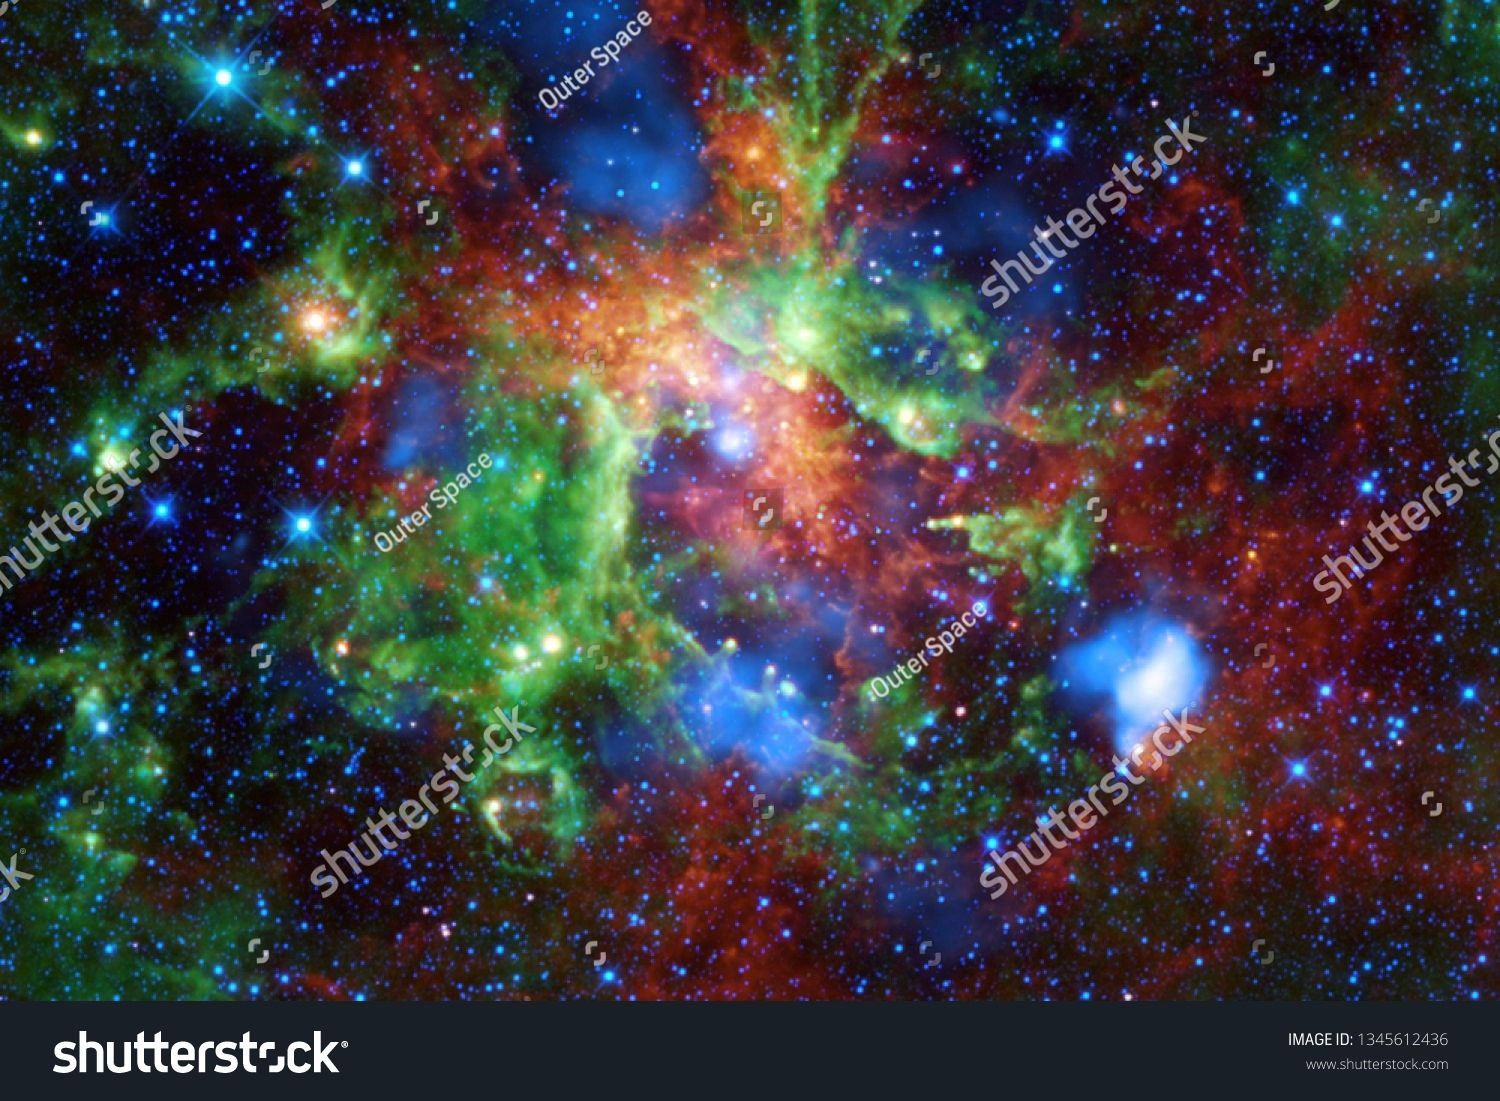 nebula starfield cluster of stars in outer space Science fiction art Elements of this image furnished by NASA Beautiful nebula starfield cluster of stars in outer space S...